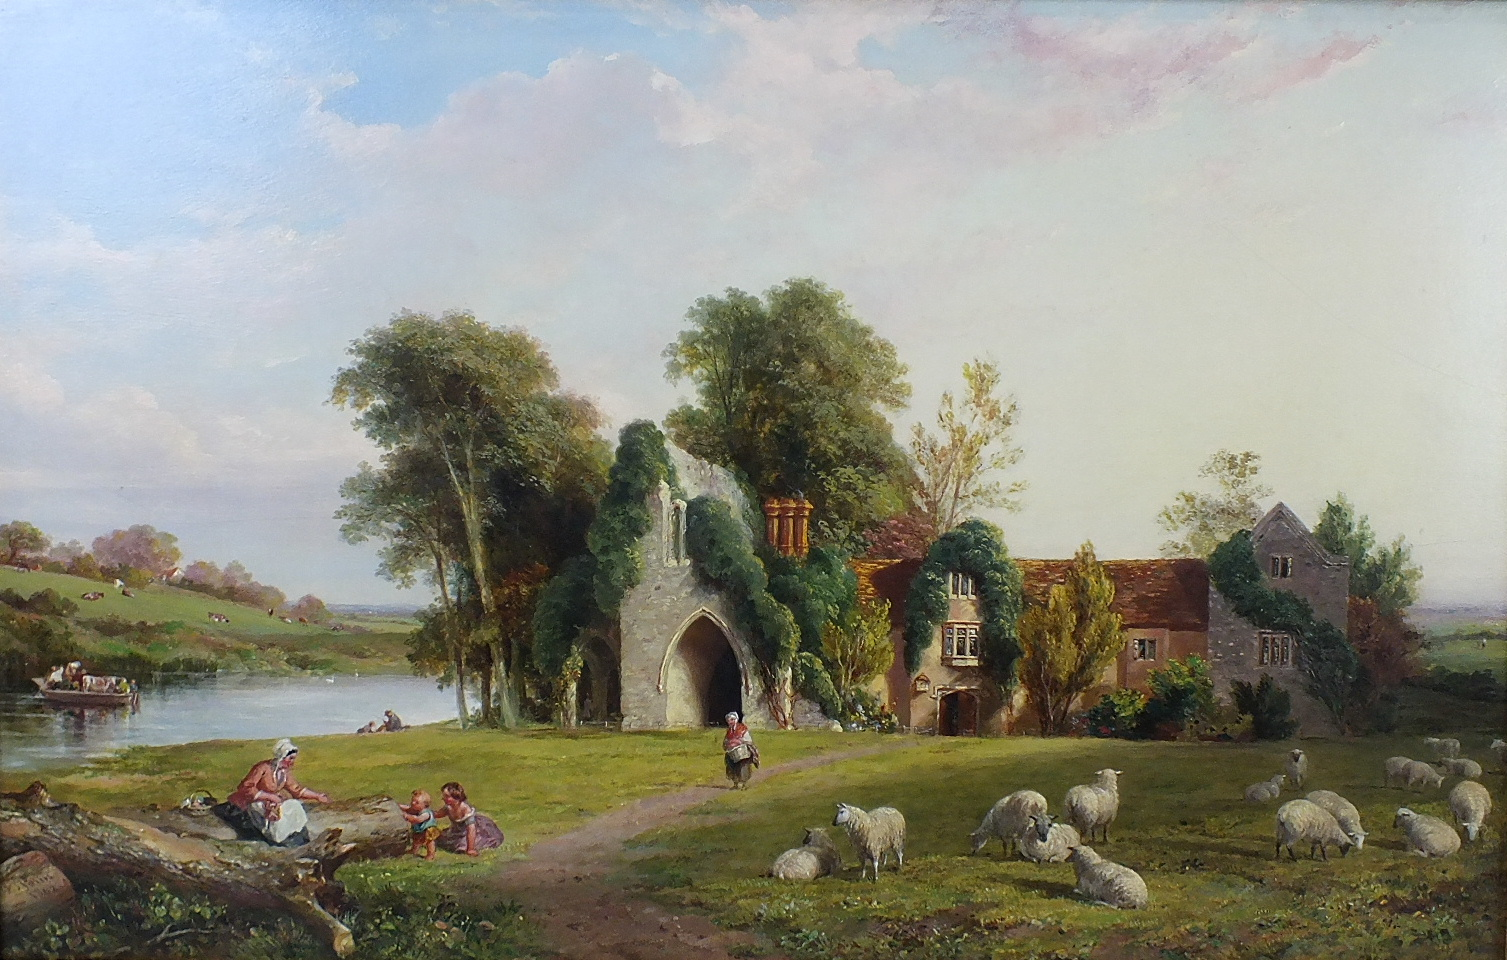 Lot 13 - Edmund Thomas Parris (1793-1873) MEDMENHAM ABBEY, DANESFIELD, MARLOW, SHEEP AND FIGURES IN FRONT